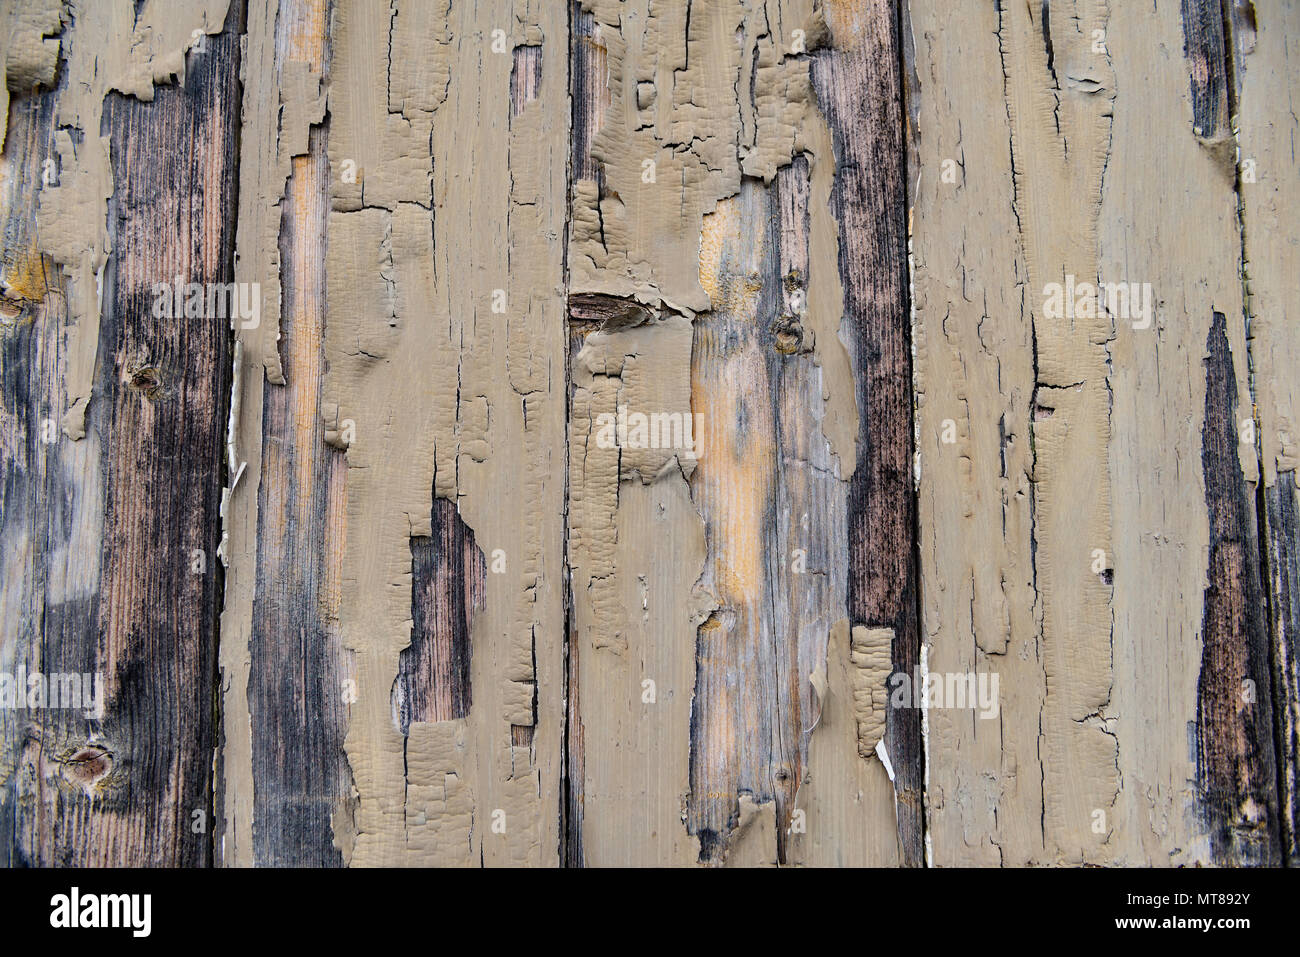 Peeling Paint on distressed timber - Stock Image